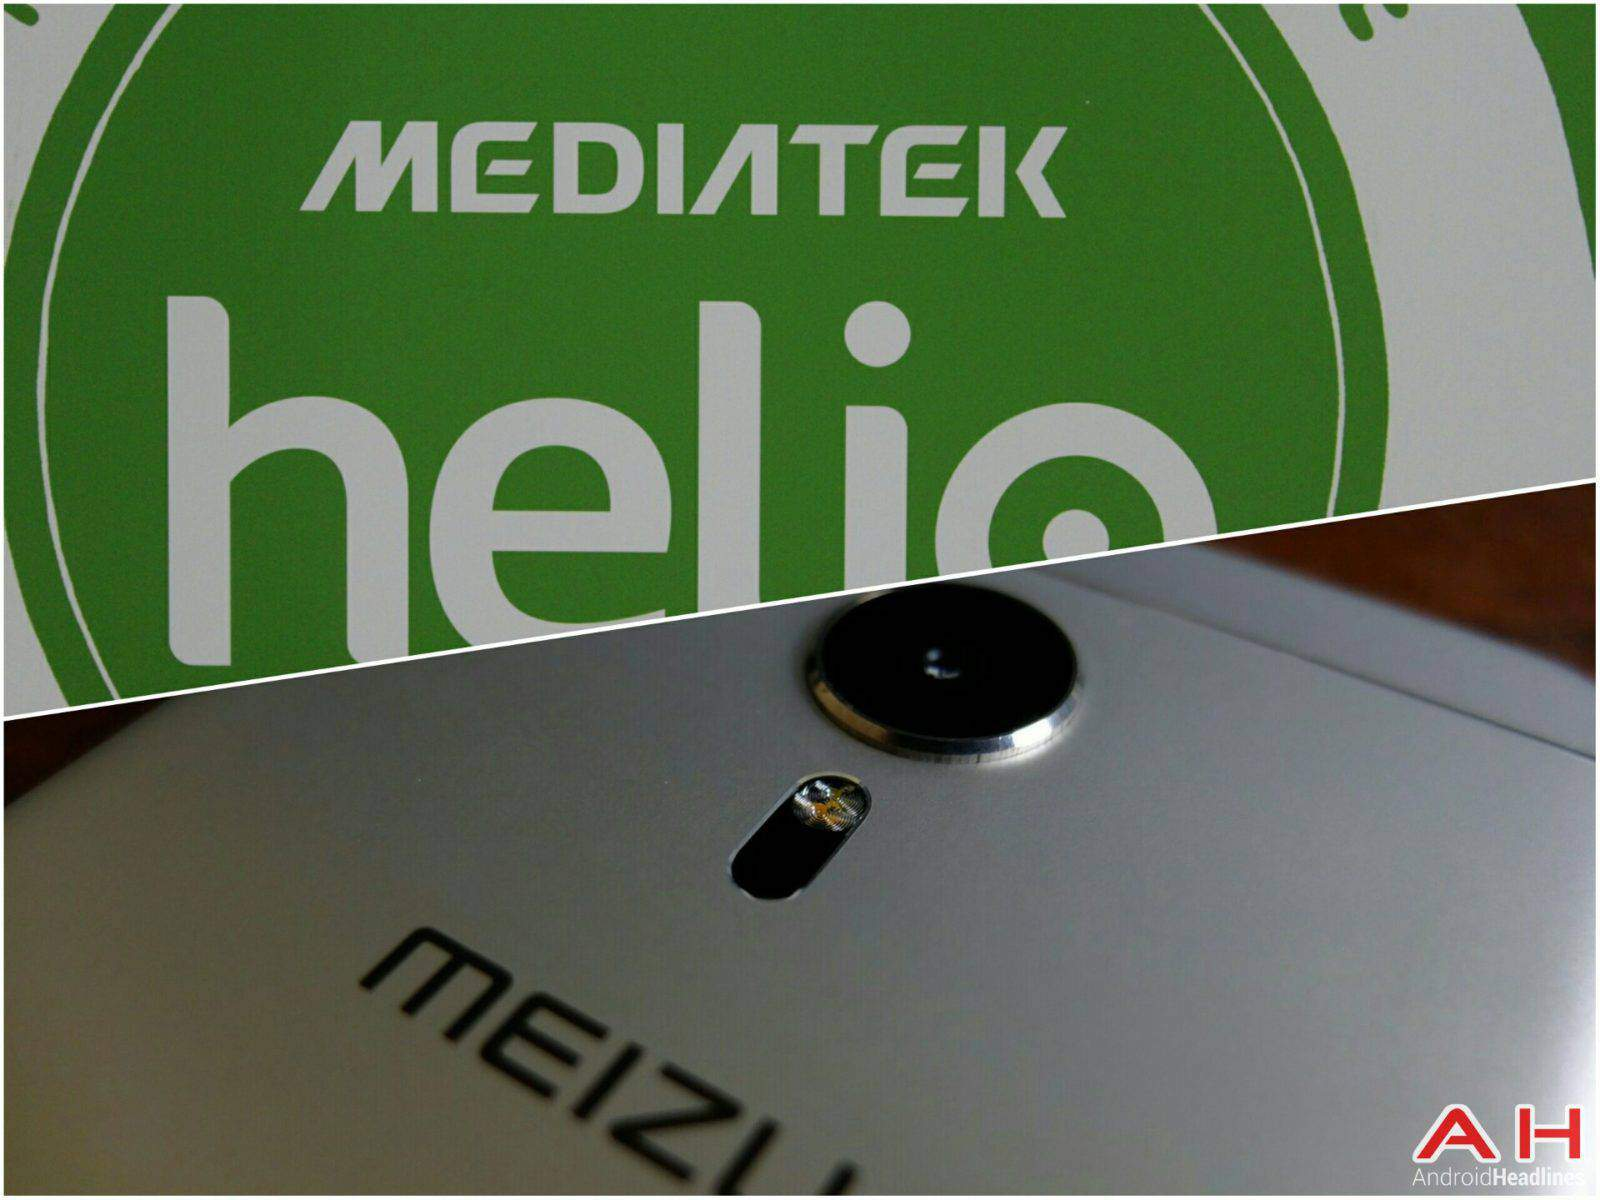 AH Mediatek Helio and Meizu_1